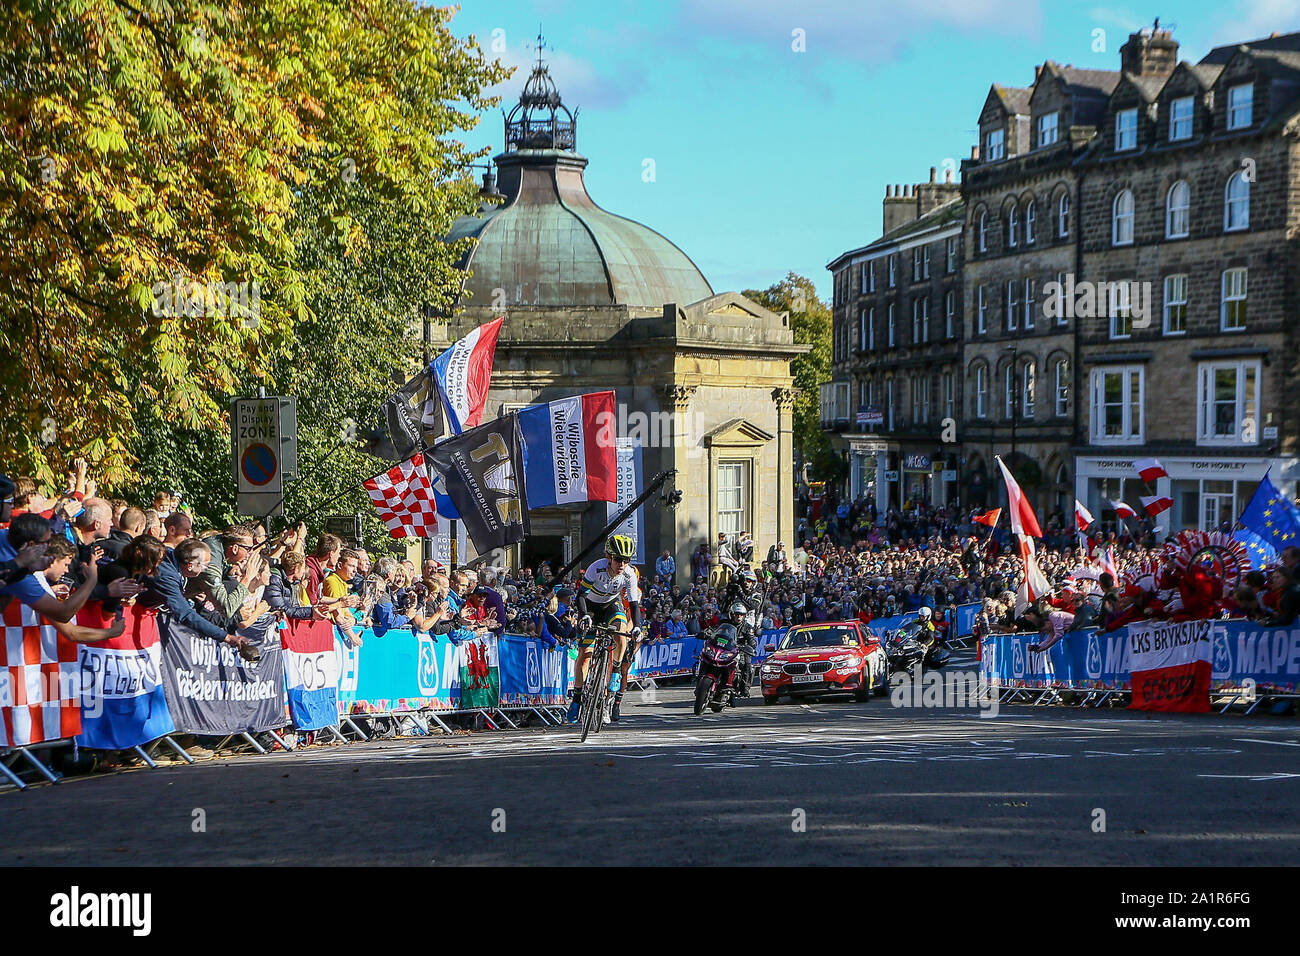 Harrogate, UK. 28th Sep, 2019. Riders tackle one of the many hills on the Harrogate circuit in the 2019 UCI Road World Championships Womens Elite Road Race. September 28, 2019 Credit Dan-Cooke/Alamy Live News Stock Photo